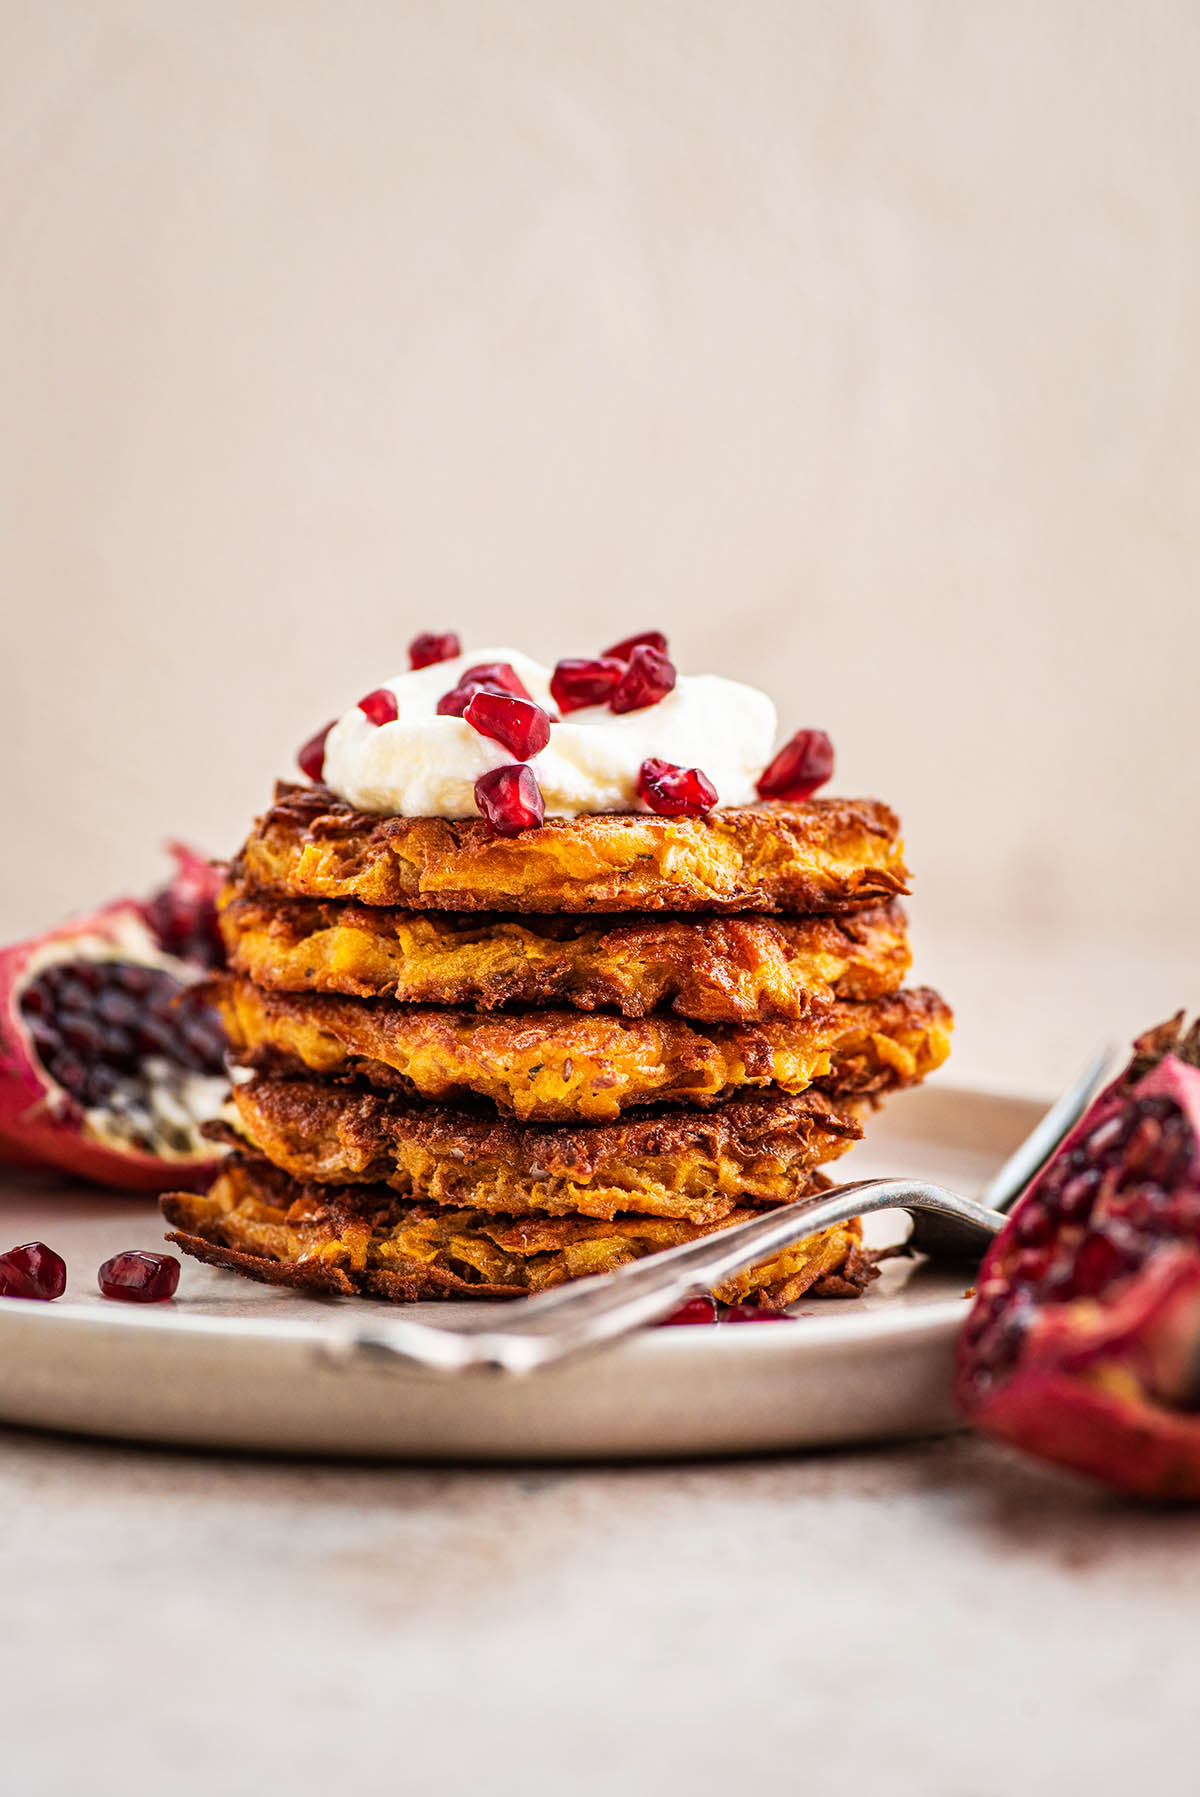 Stack of latkes on a plate with a fork.